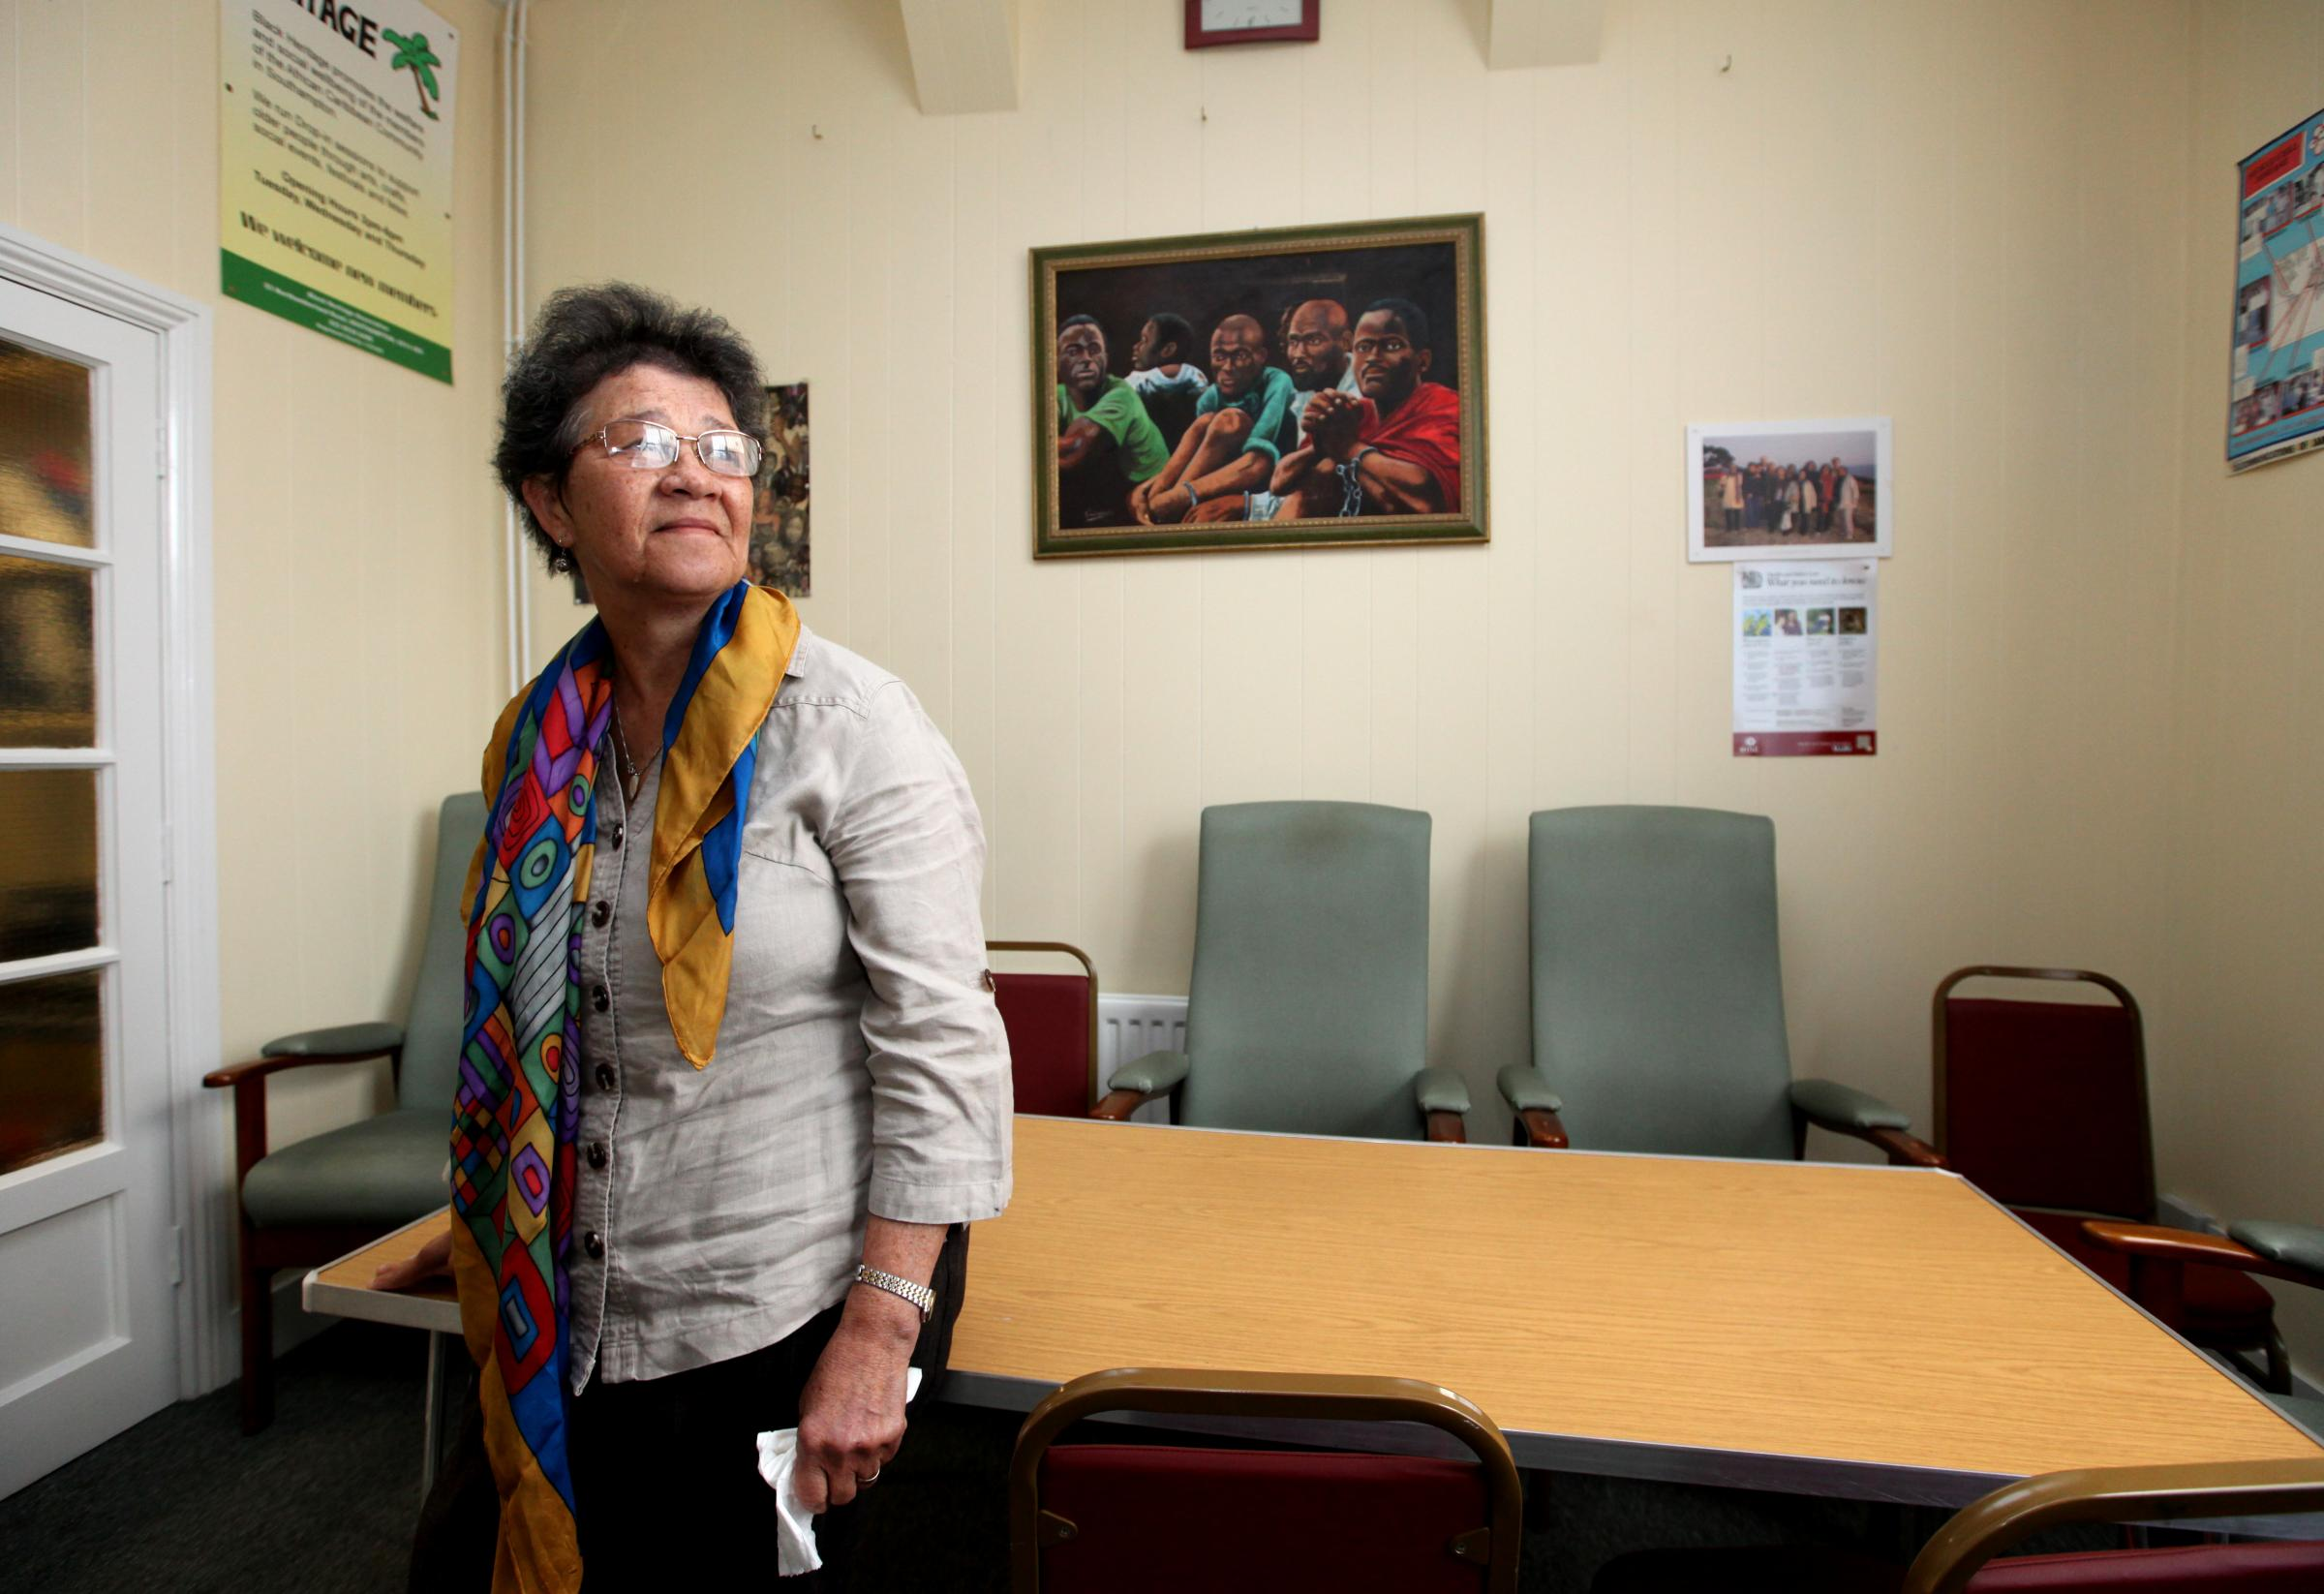 14 May 2015 - The Black Heritage Association is under threat due to lack of government funding, Beverley Dowdell pictured at the Centre where the association is based.